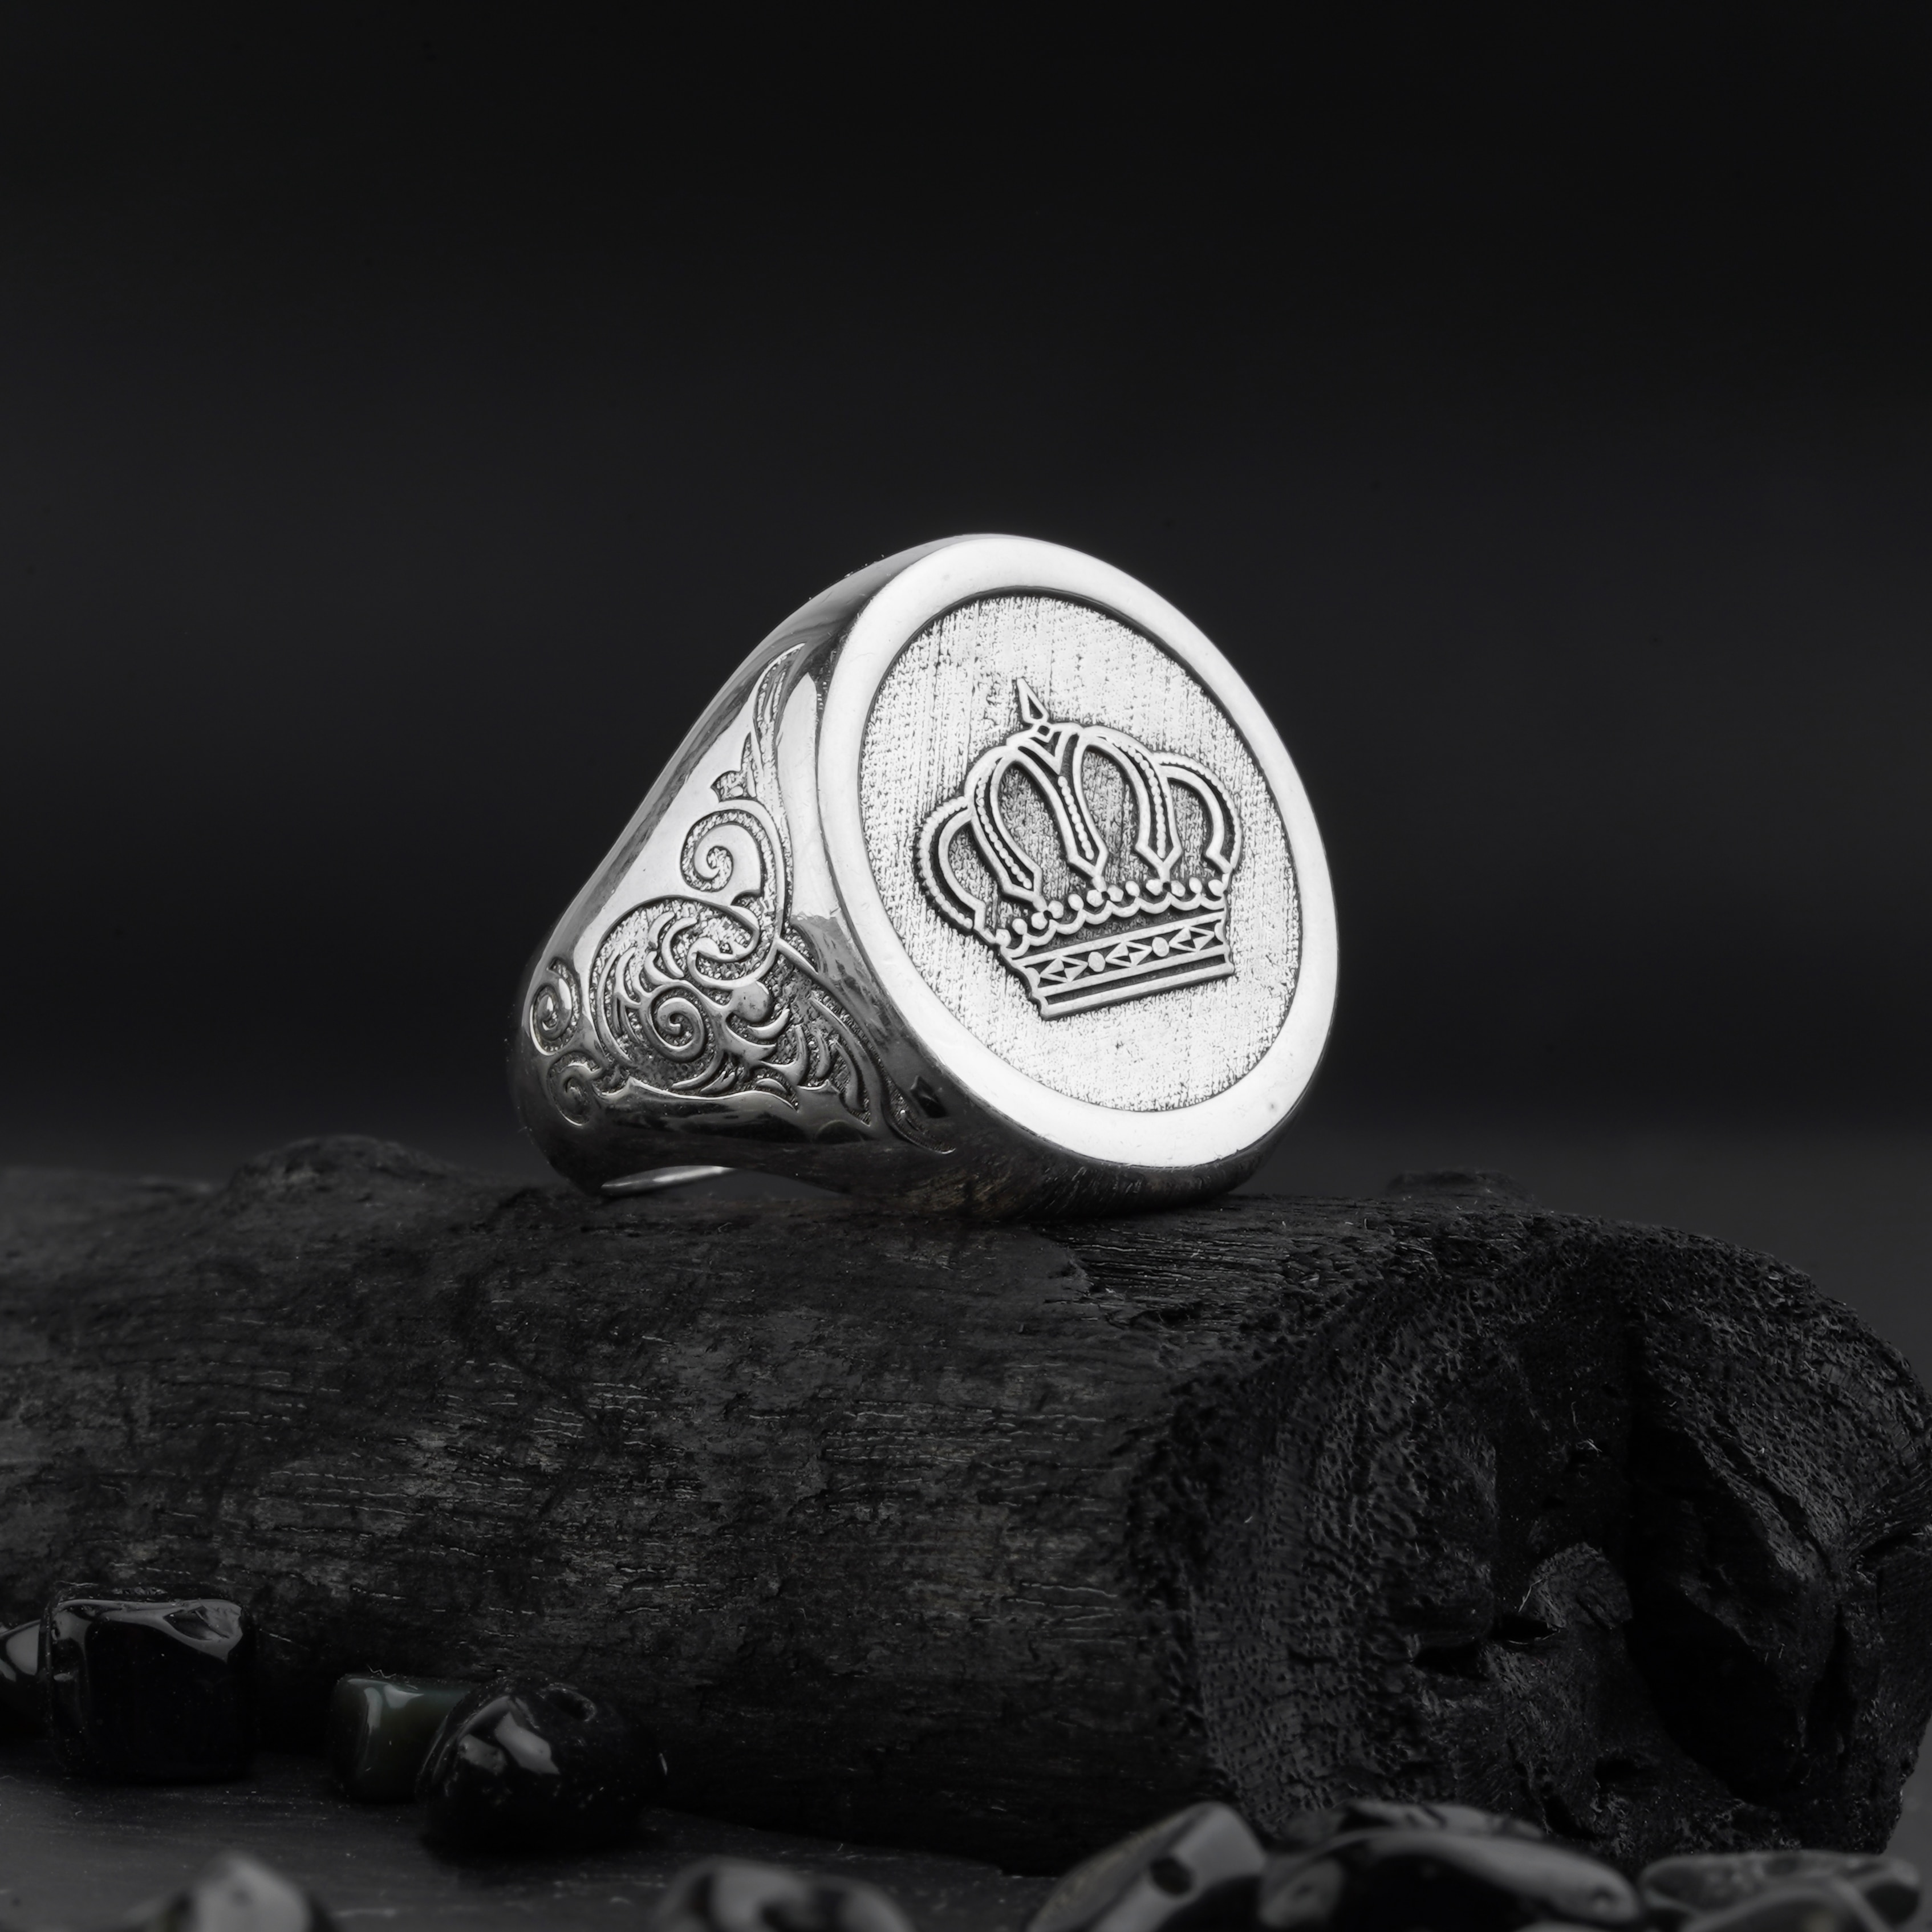 925 Sterling Silver ring custom design name and pattern  Jewelry Made in Turkey in a luxurious way for men with gift High-qualit